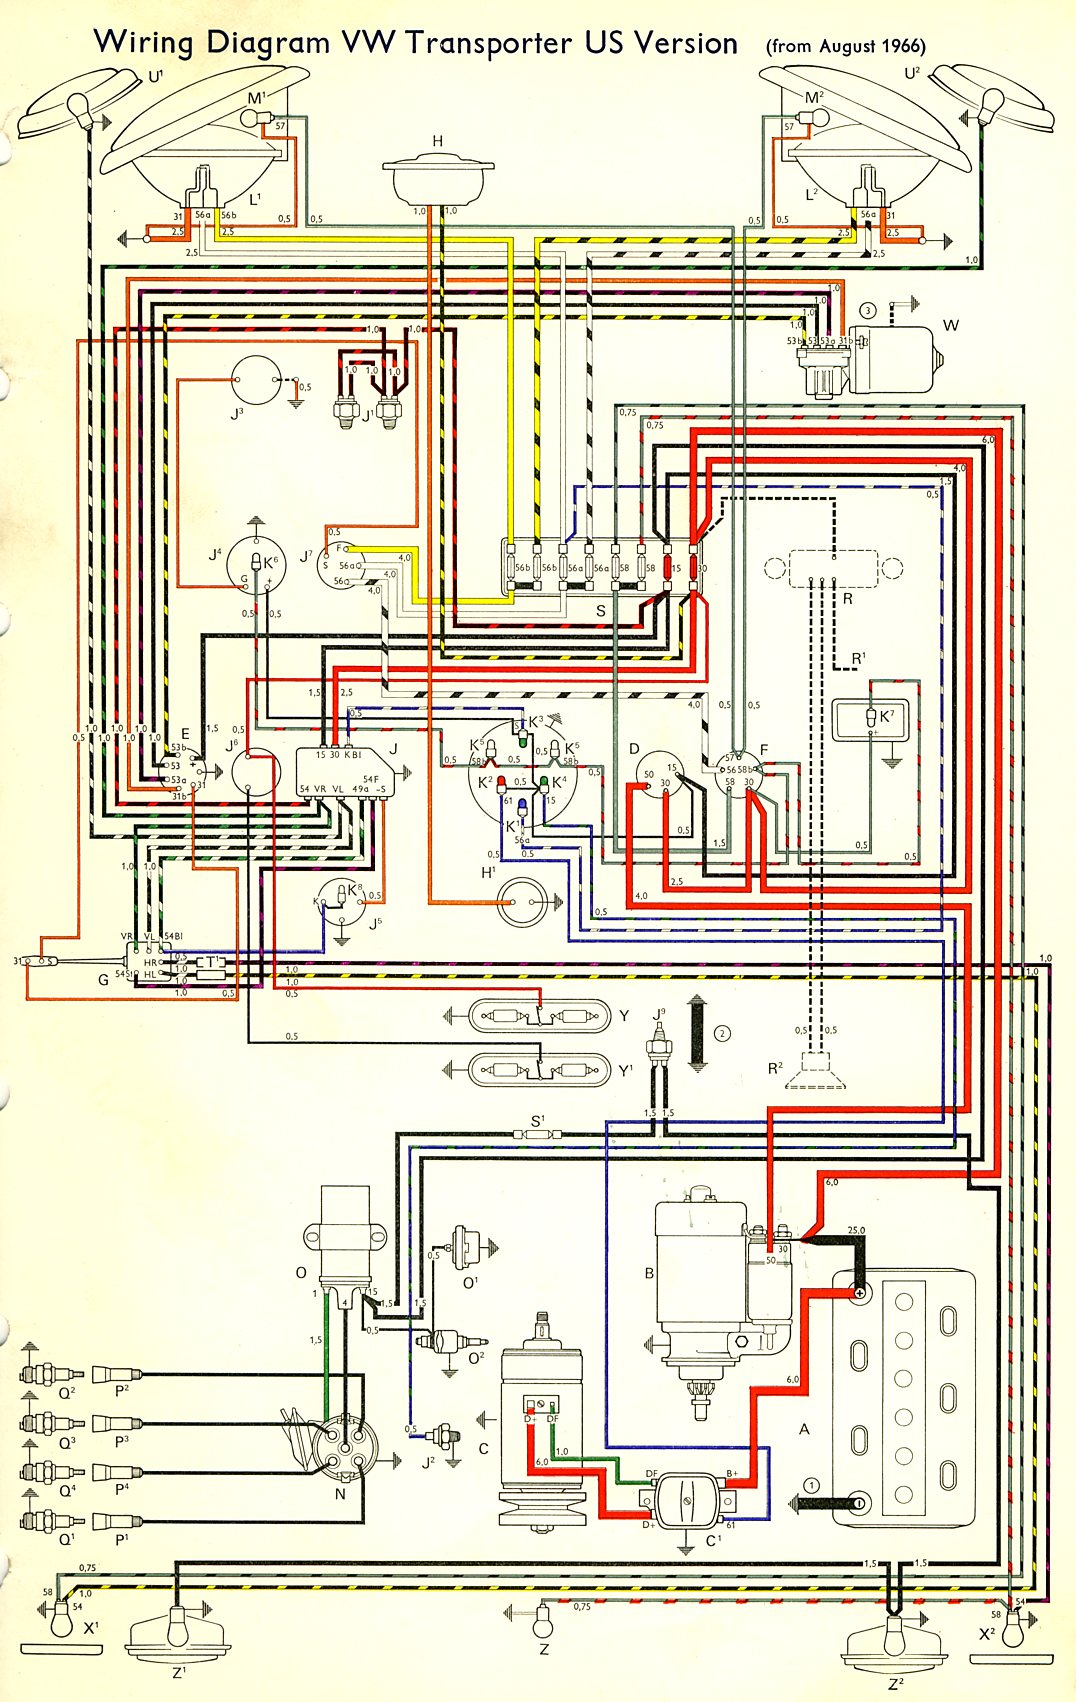 1967 Bus Wiring diagram USA TheGoldenBug com